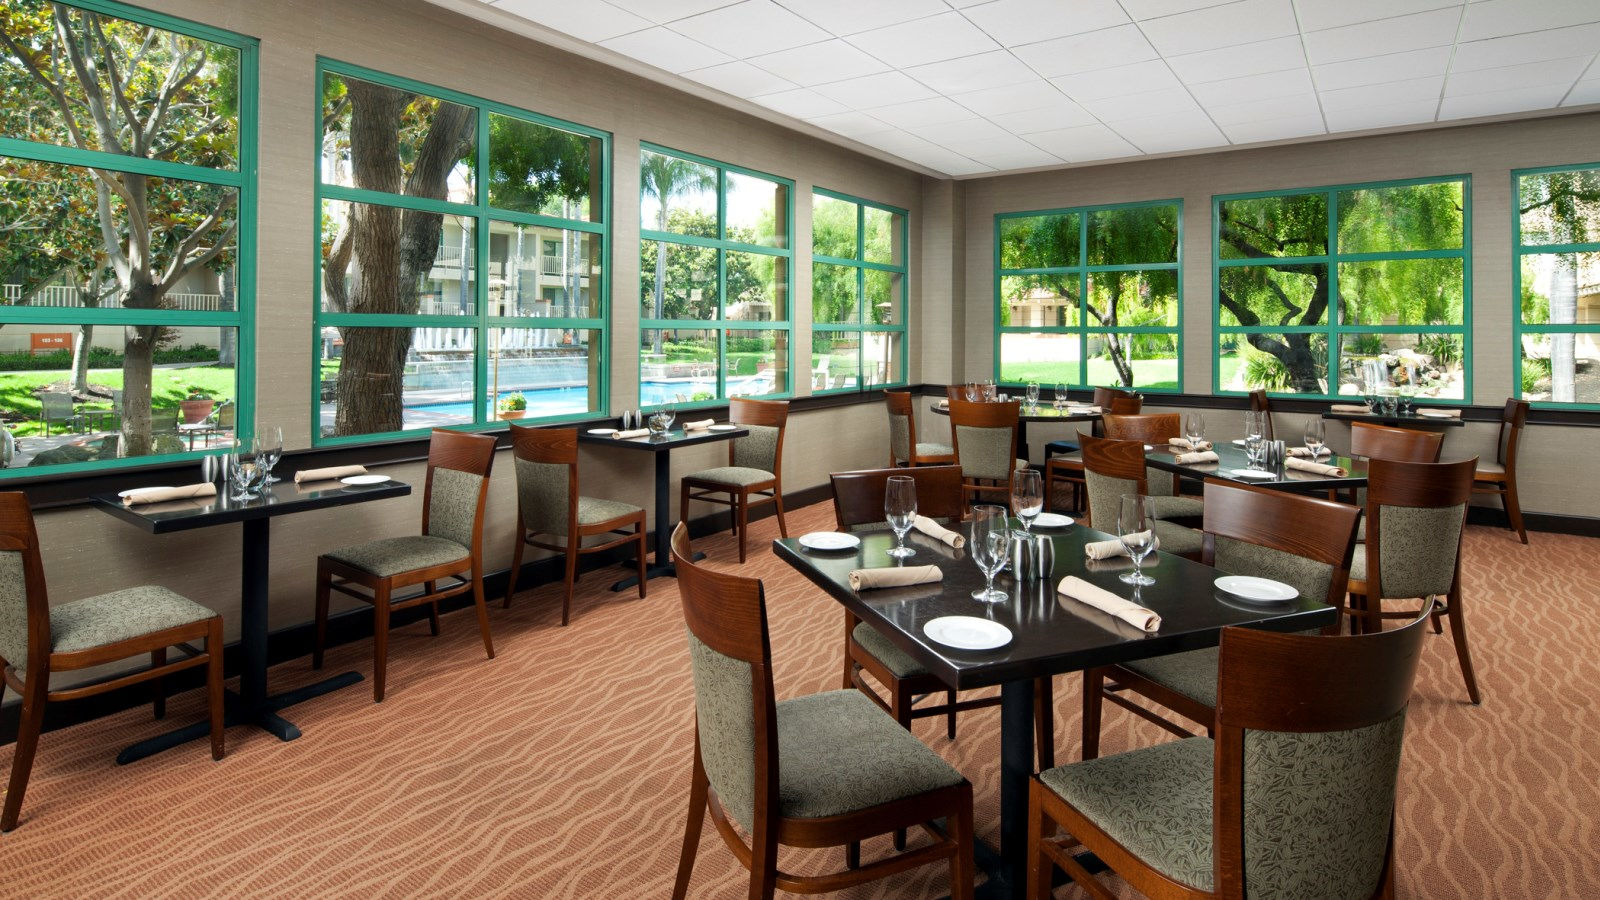 Features and Amenities - Dining